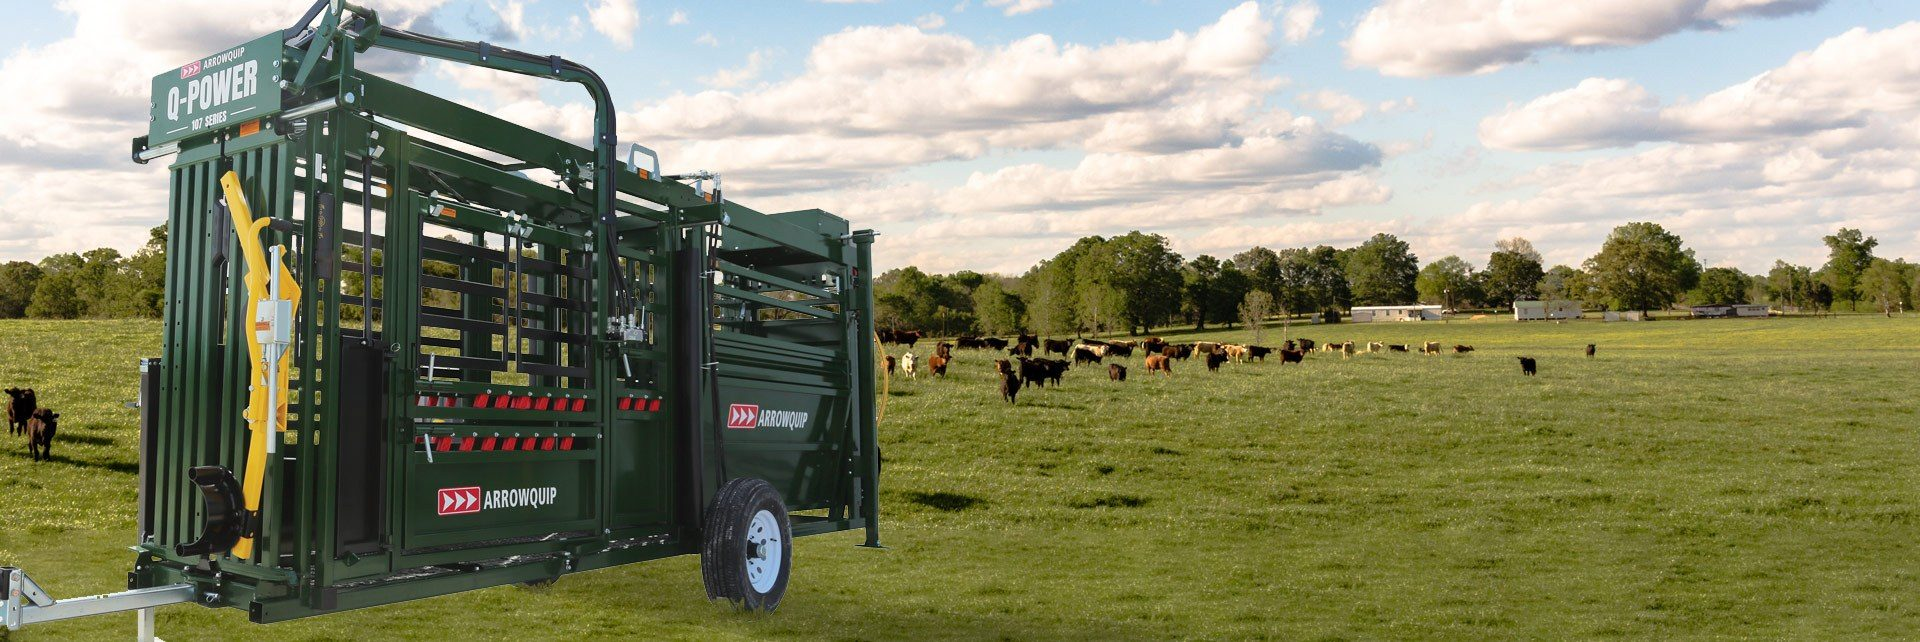 Hydraulic portable cattle chute and alley in pasture ready for towing